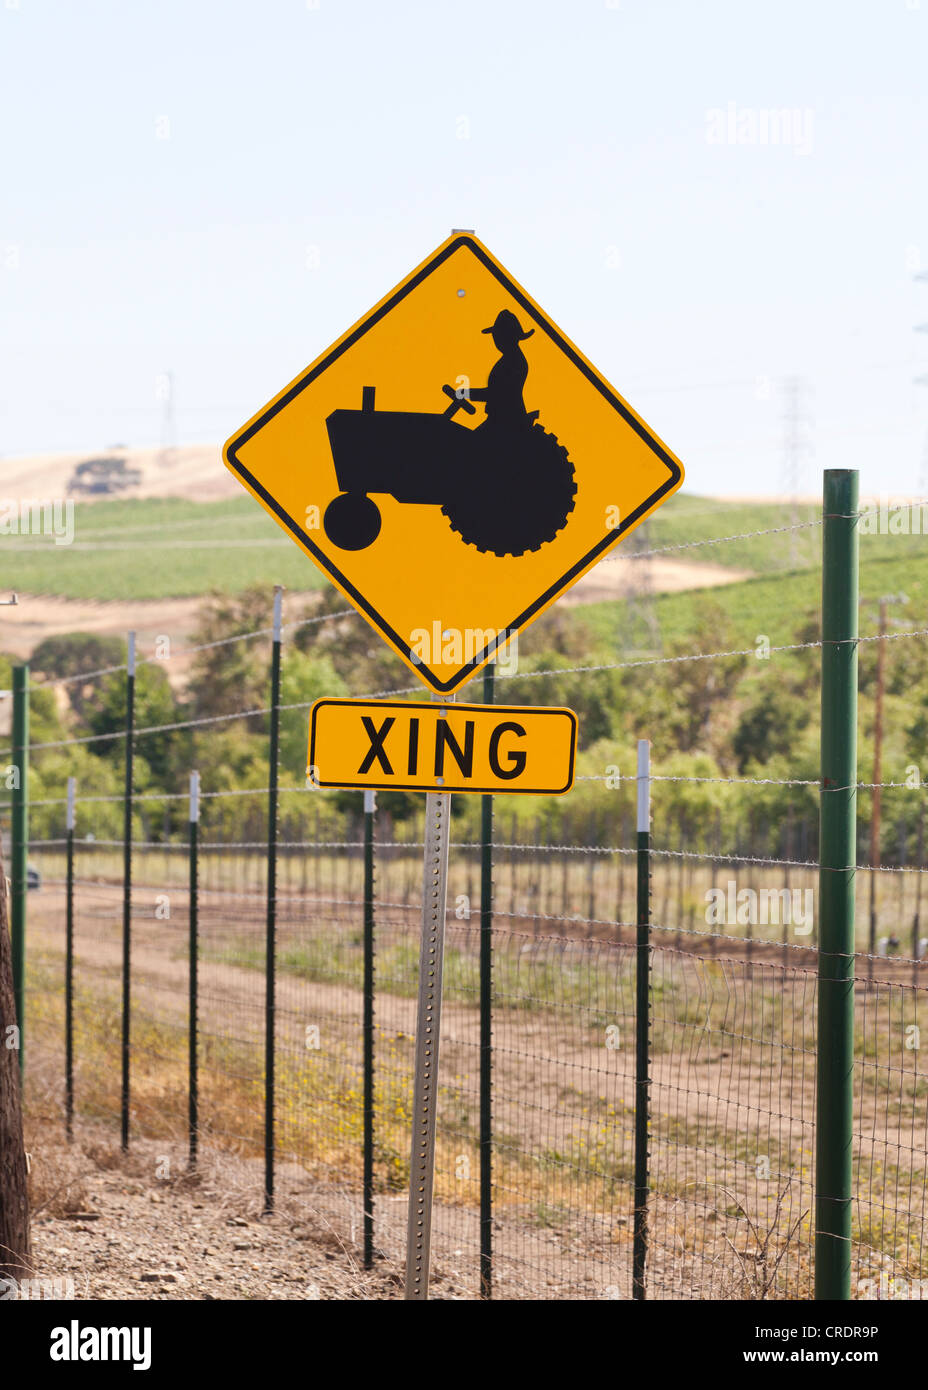 Tractor crossing sign - Stock Image